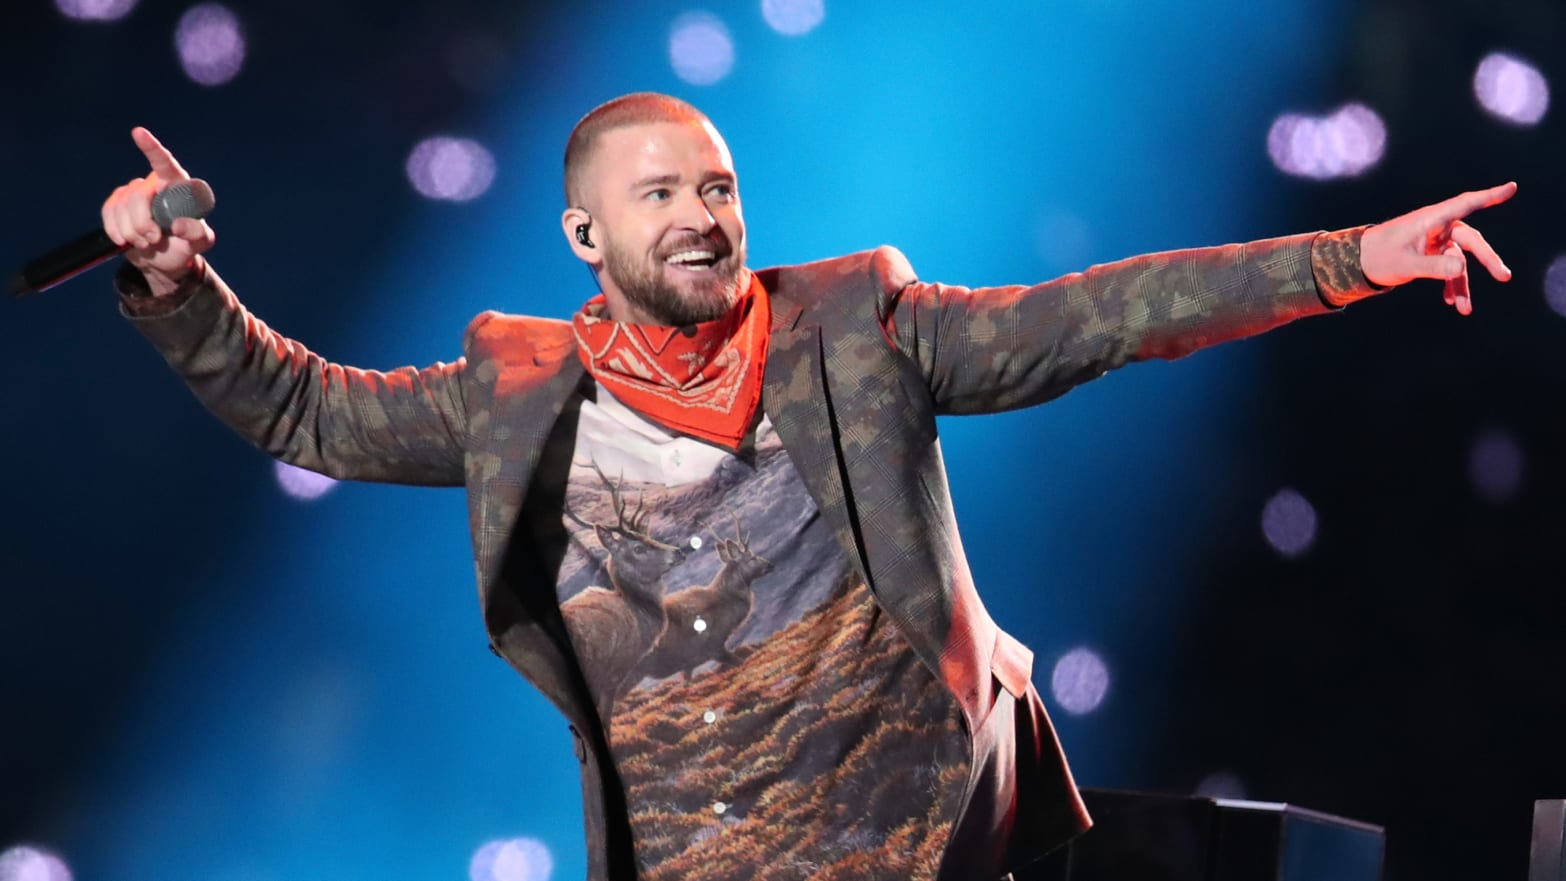 Justin Timberlake superbowl performance in 2018